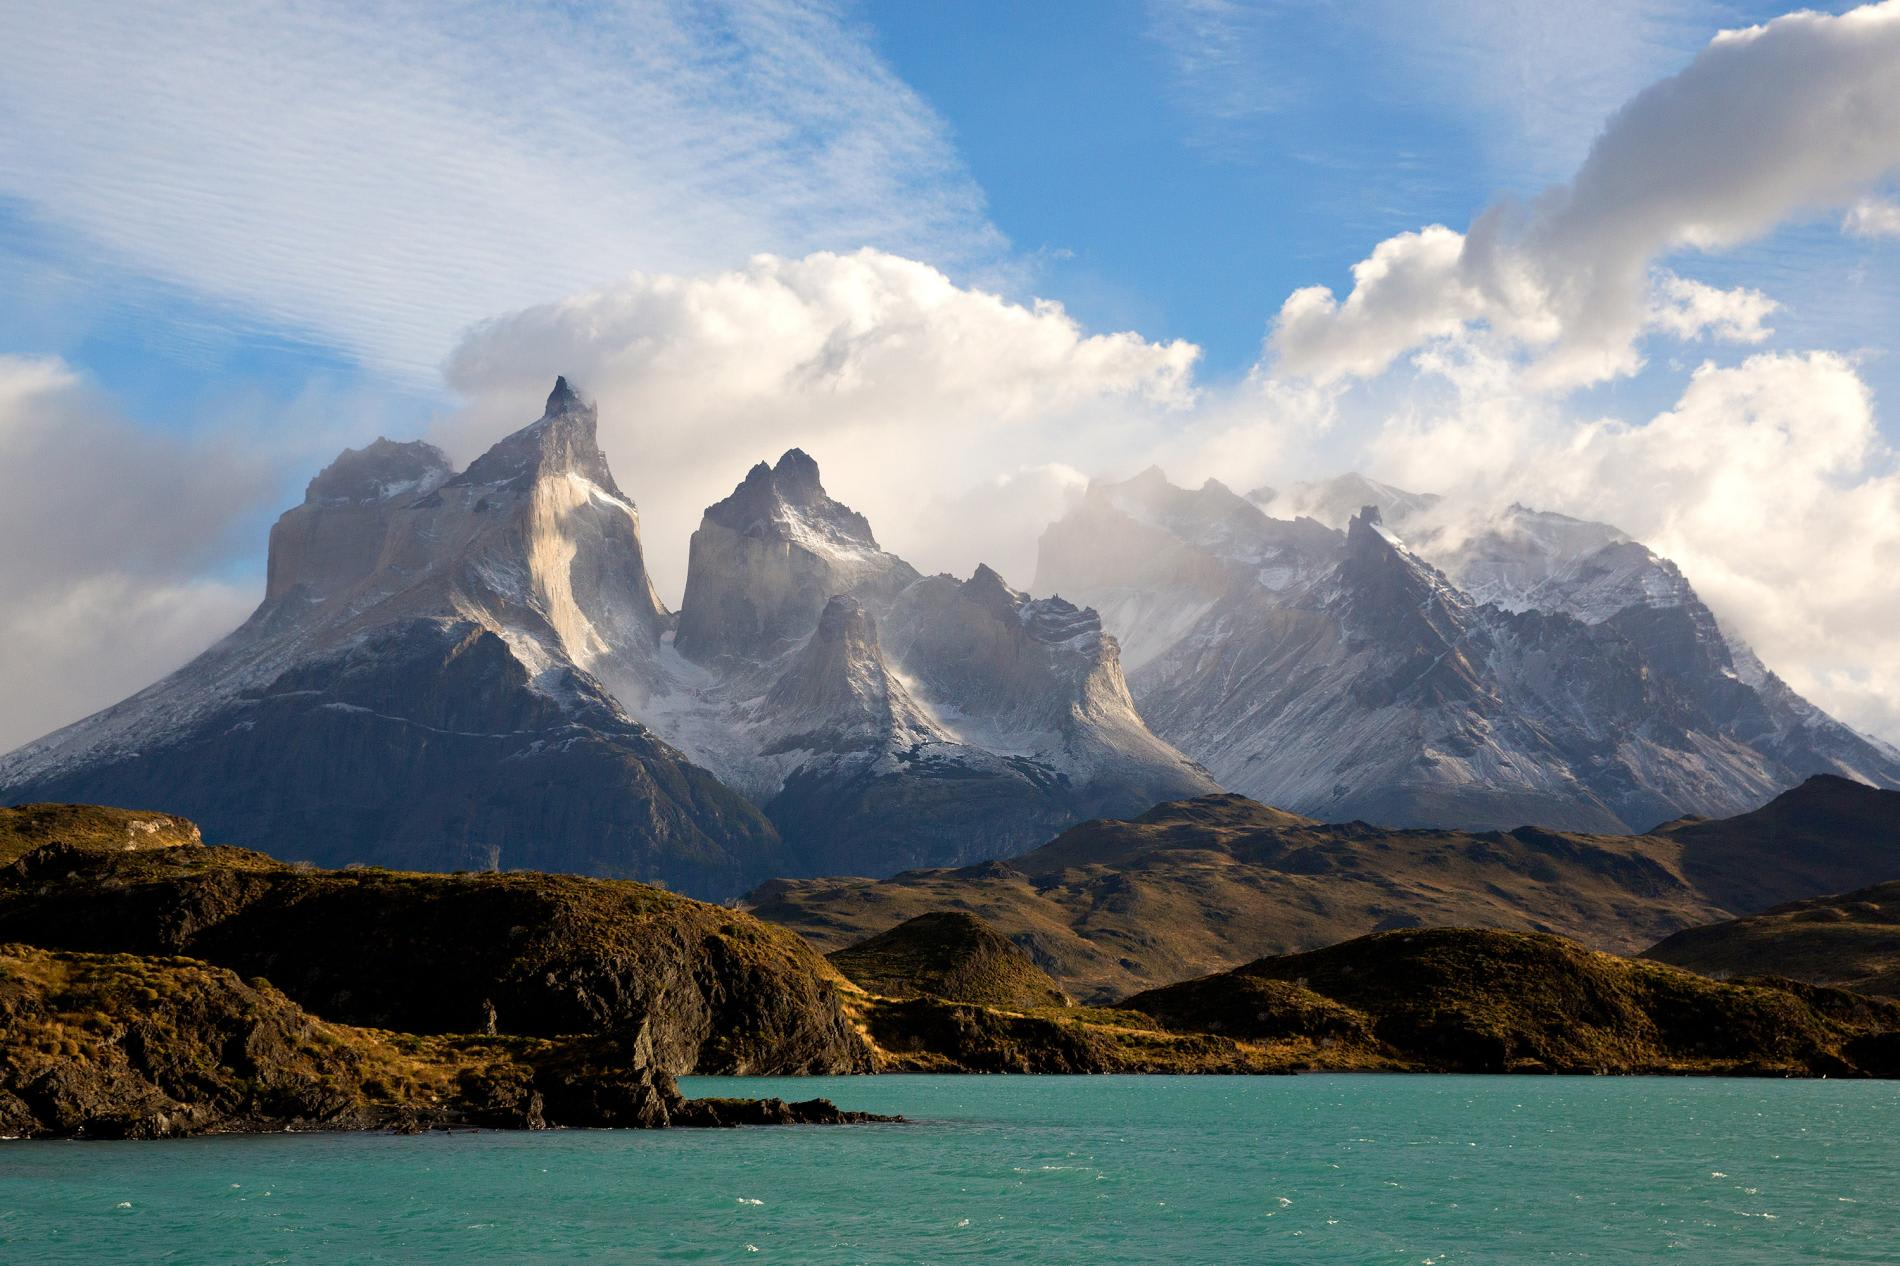 Torres del Paine in Patagonia - mountains and water